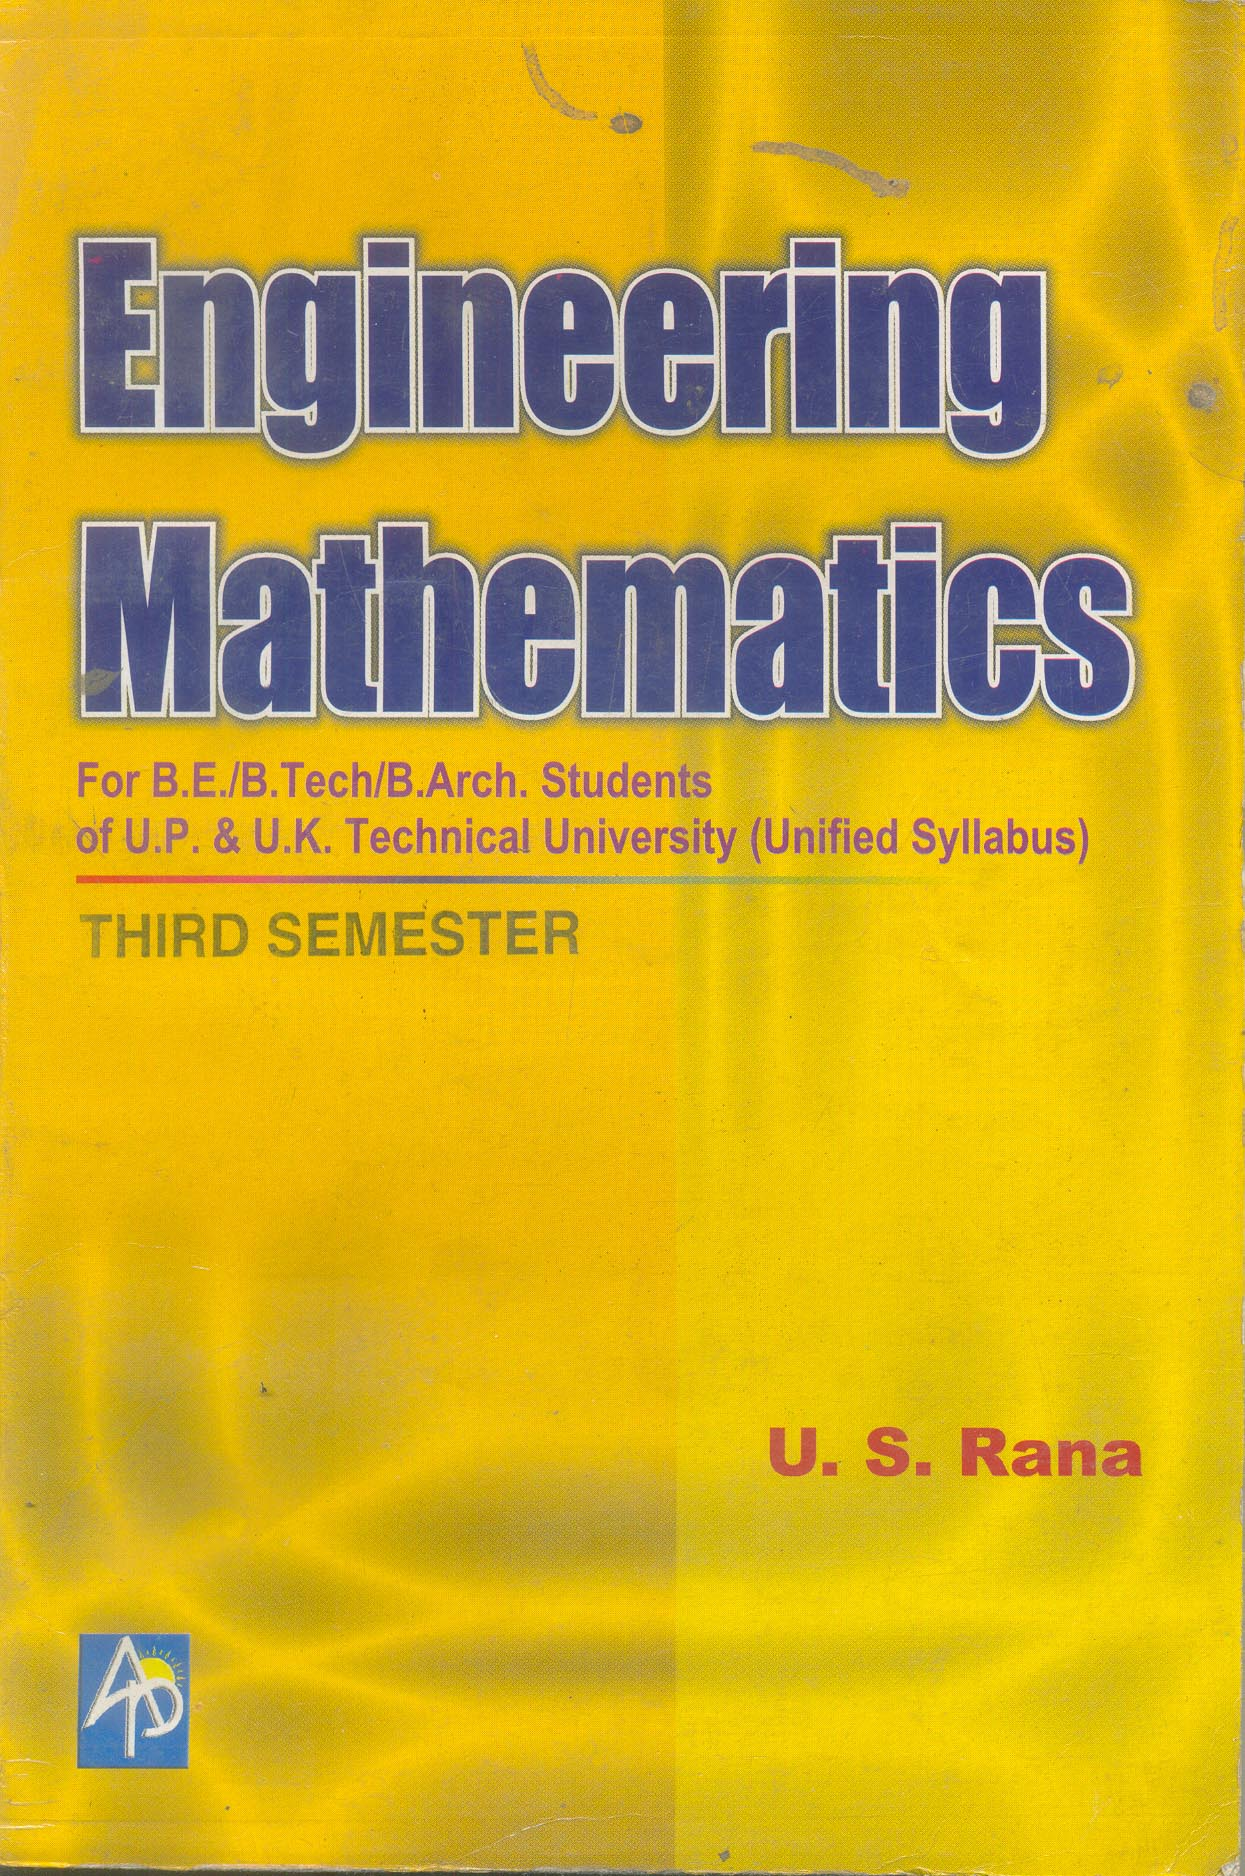 TAS-301 ENGINEERING MATHEMATICS III